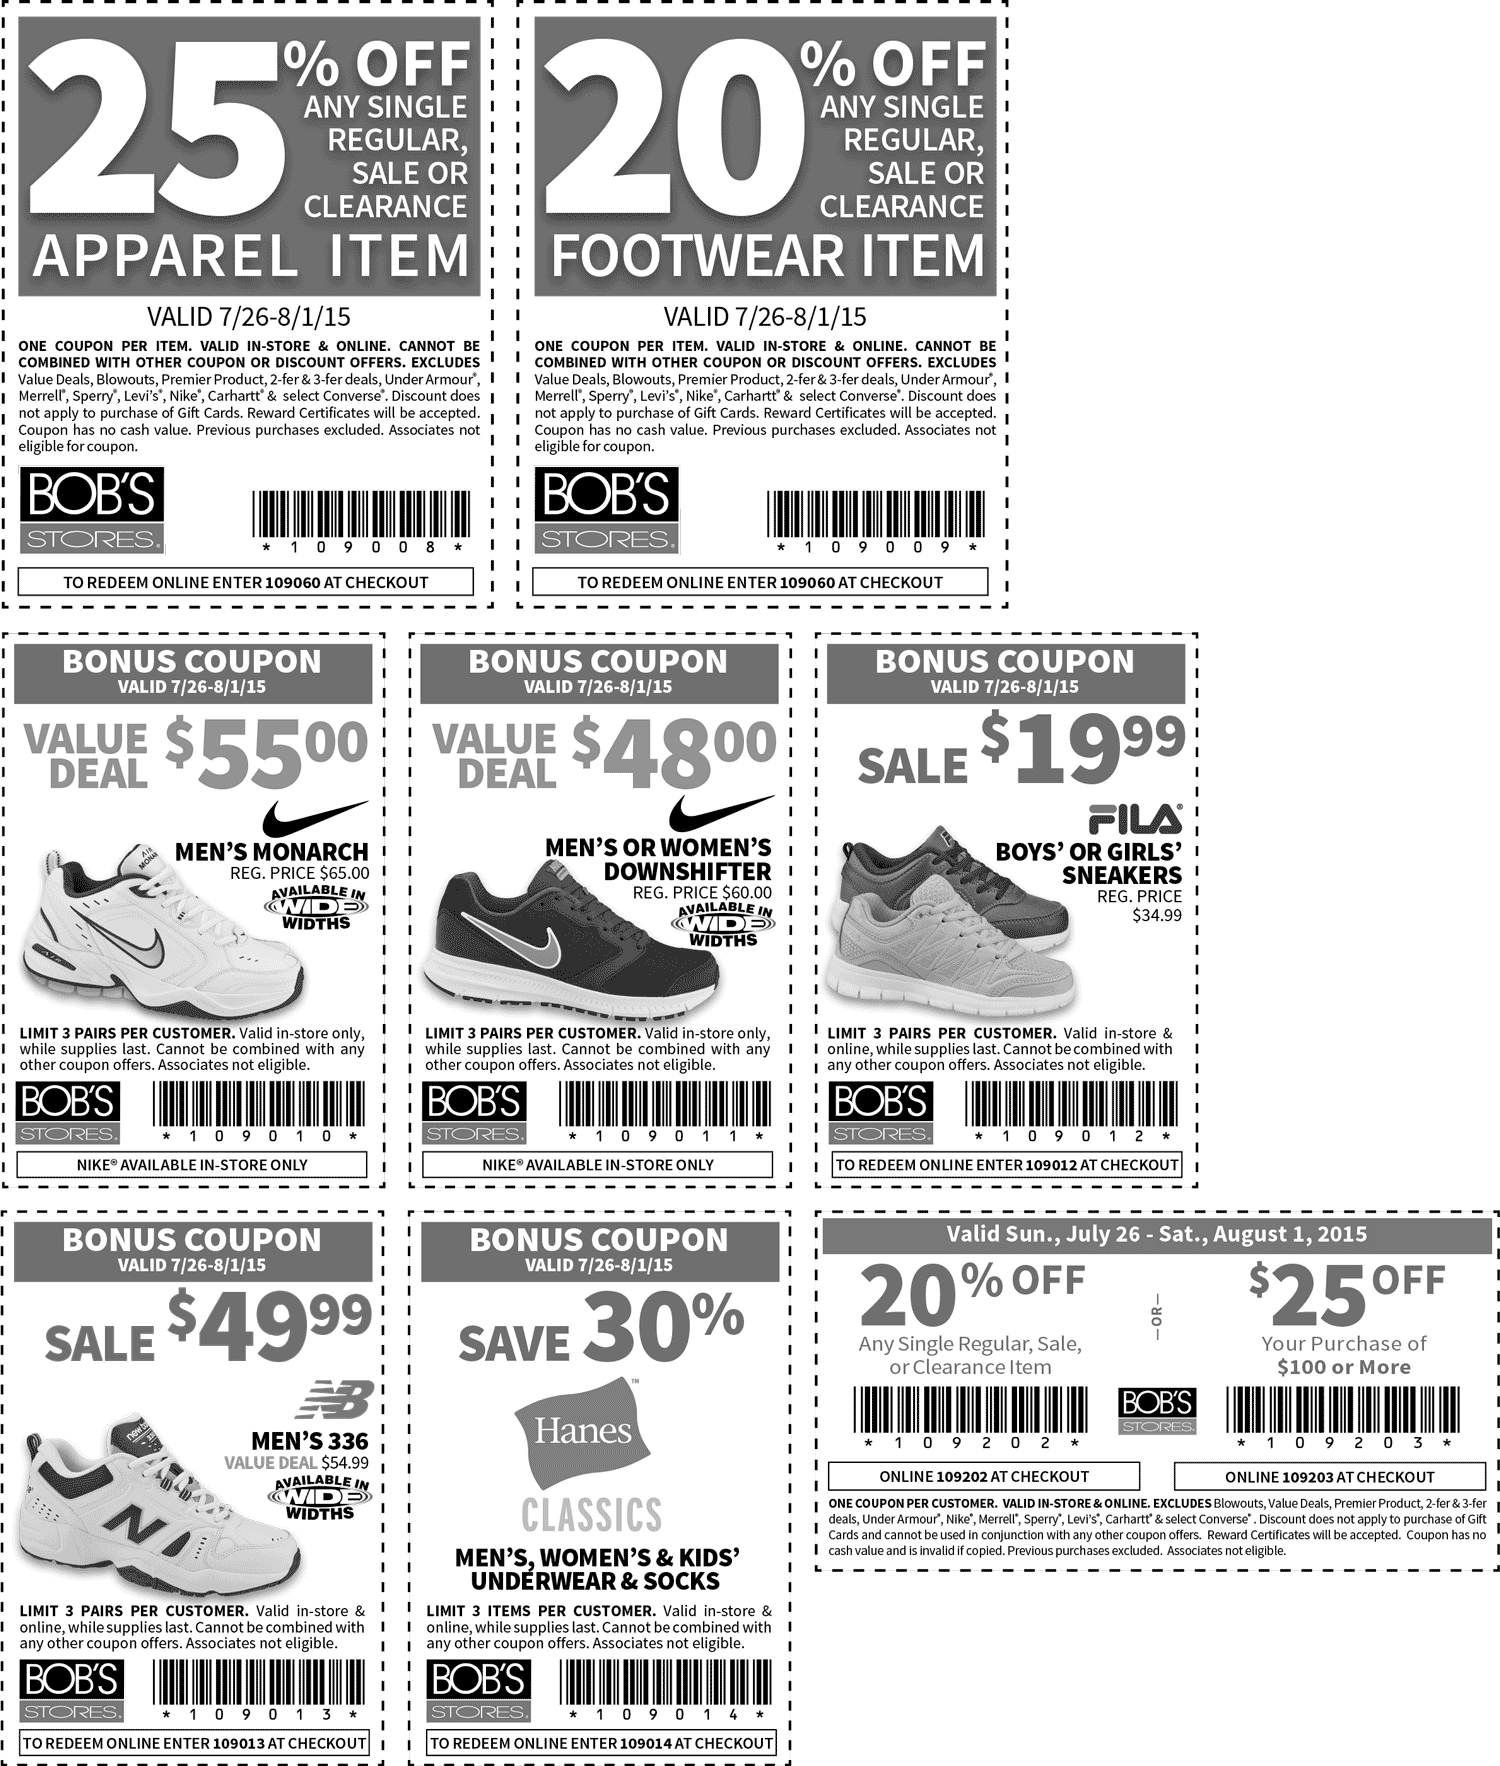 Bobs Stores Coupon September 2018 20-25% off & more at Bobs Stores, or online via promo code 109060